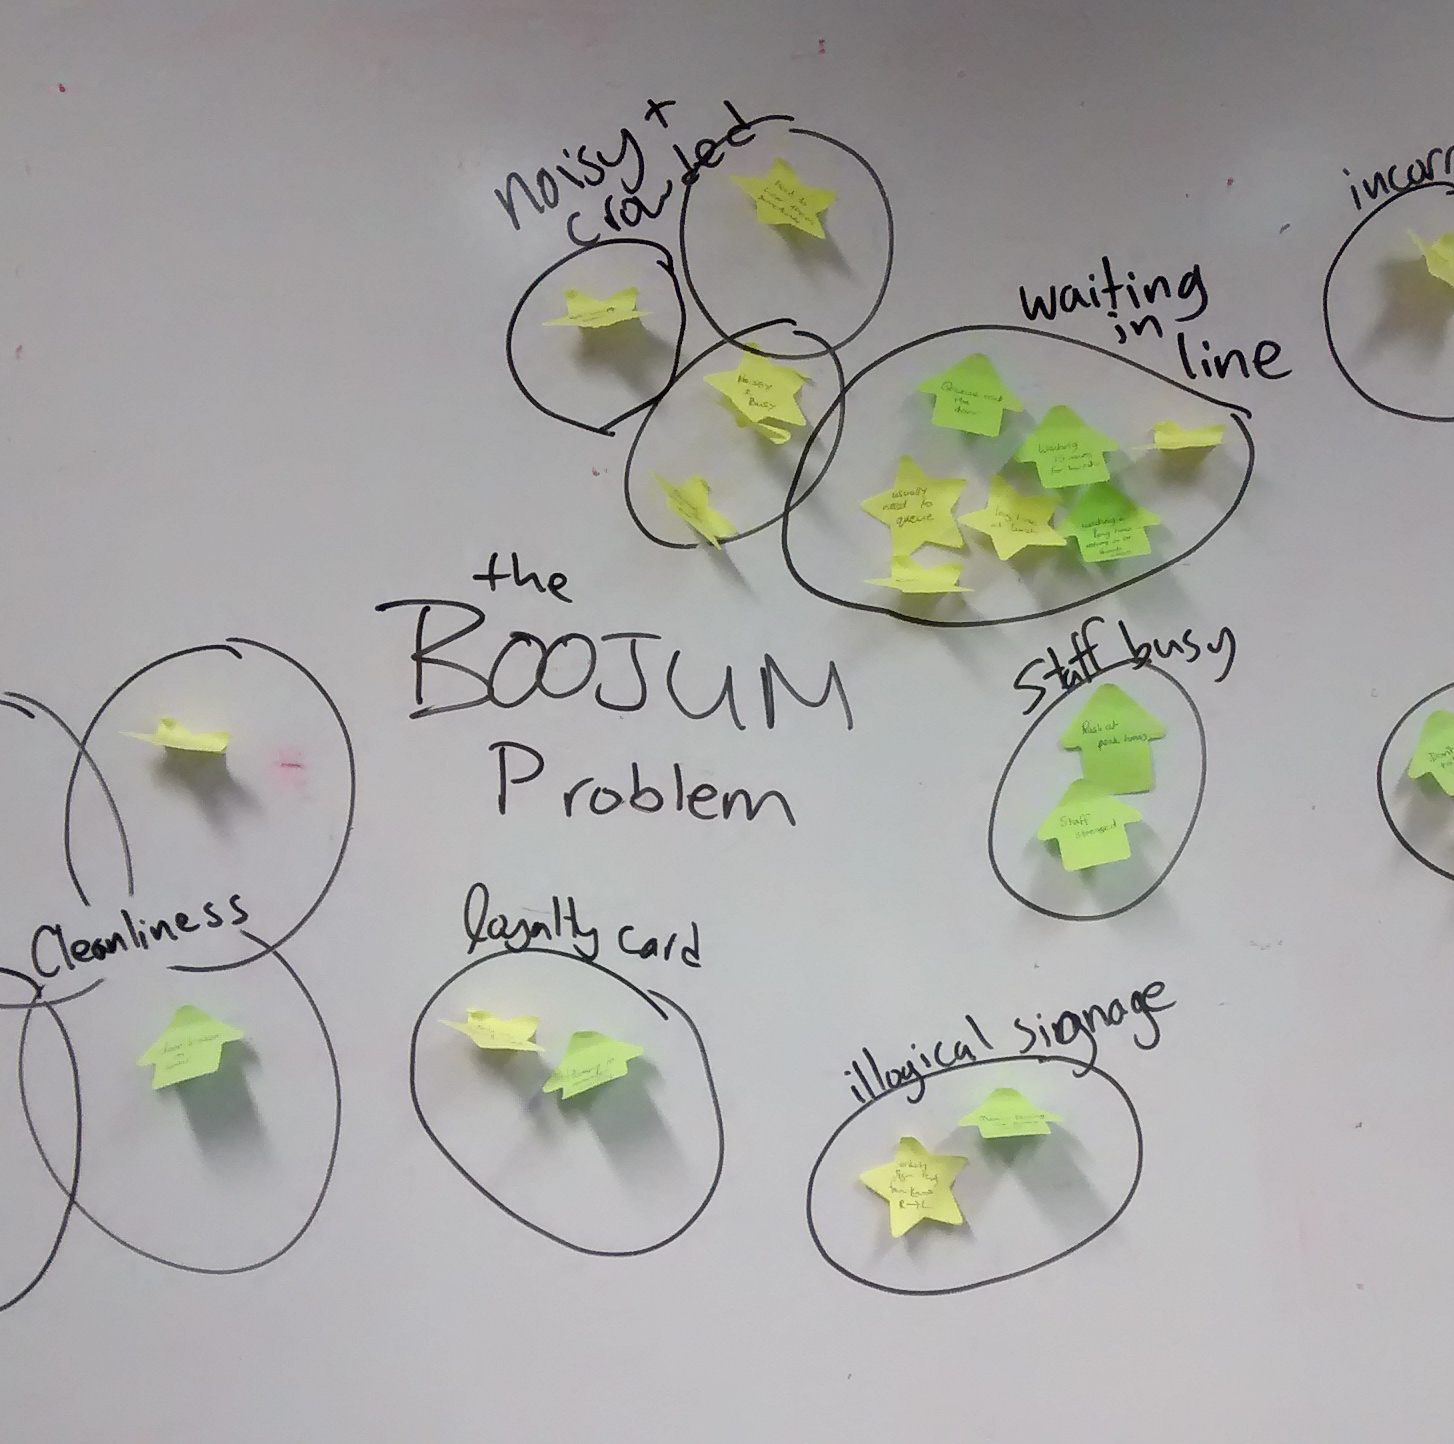 The Boojum Project